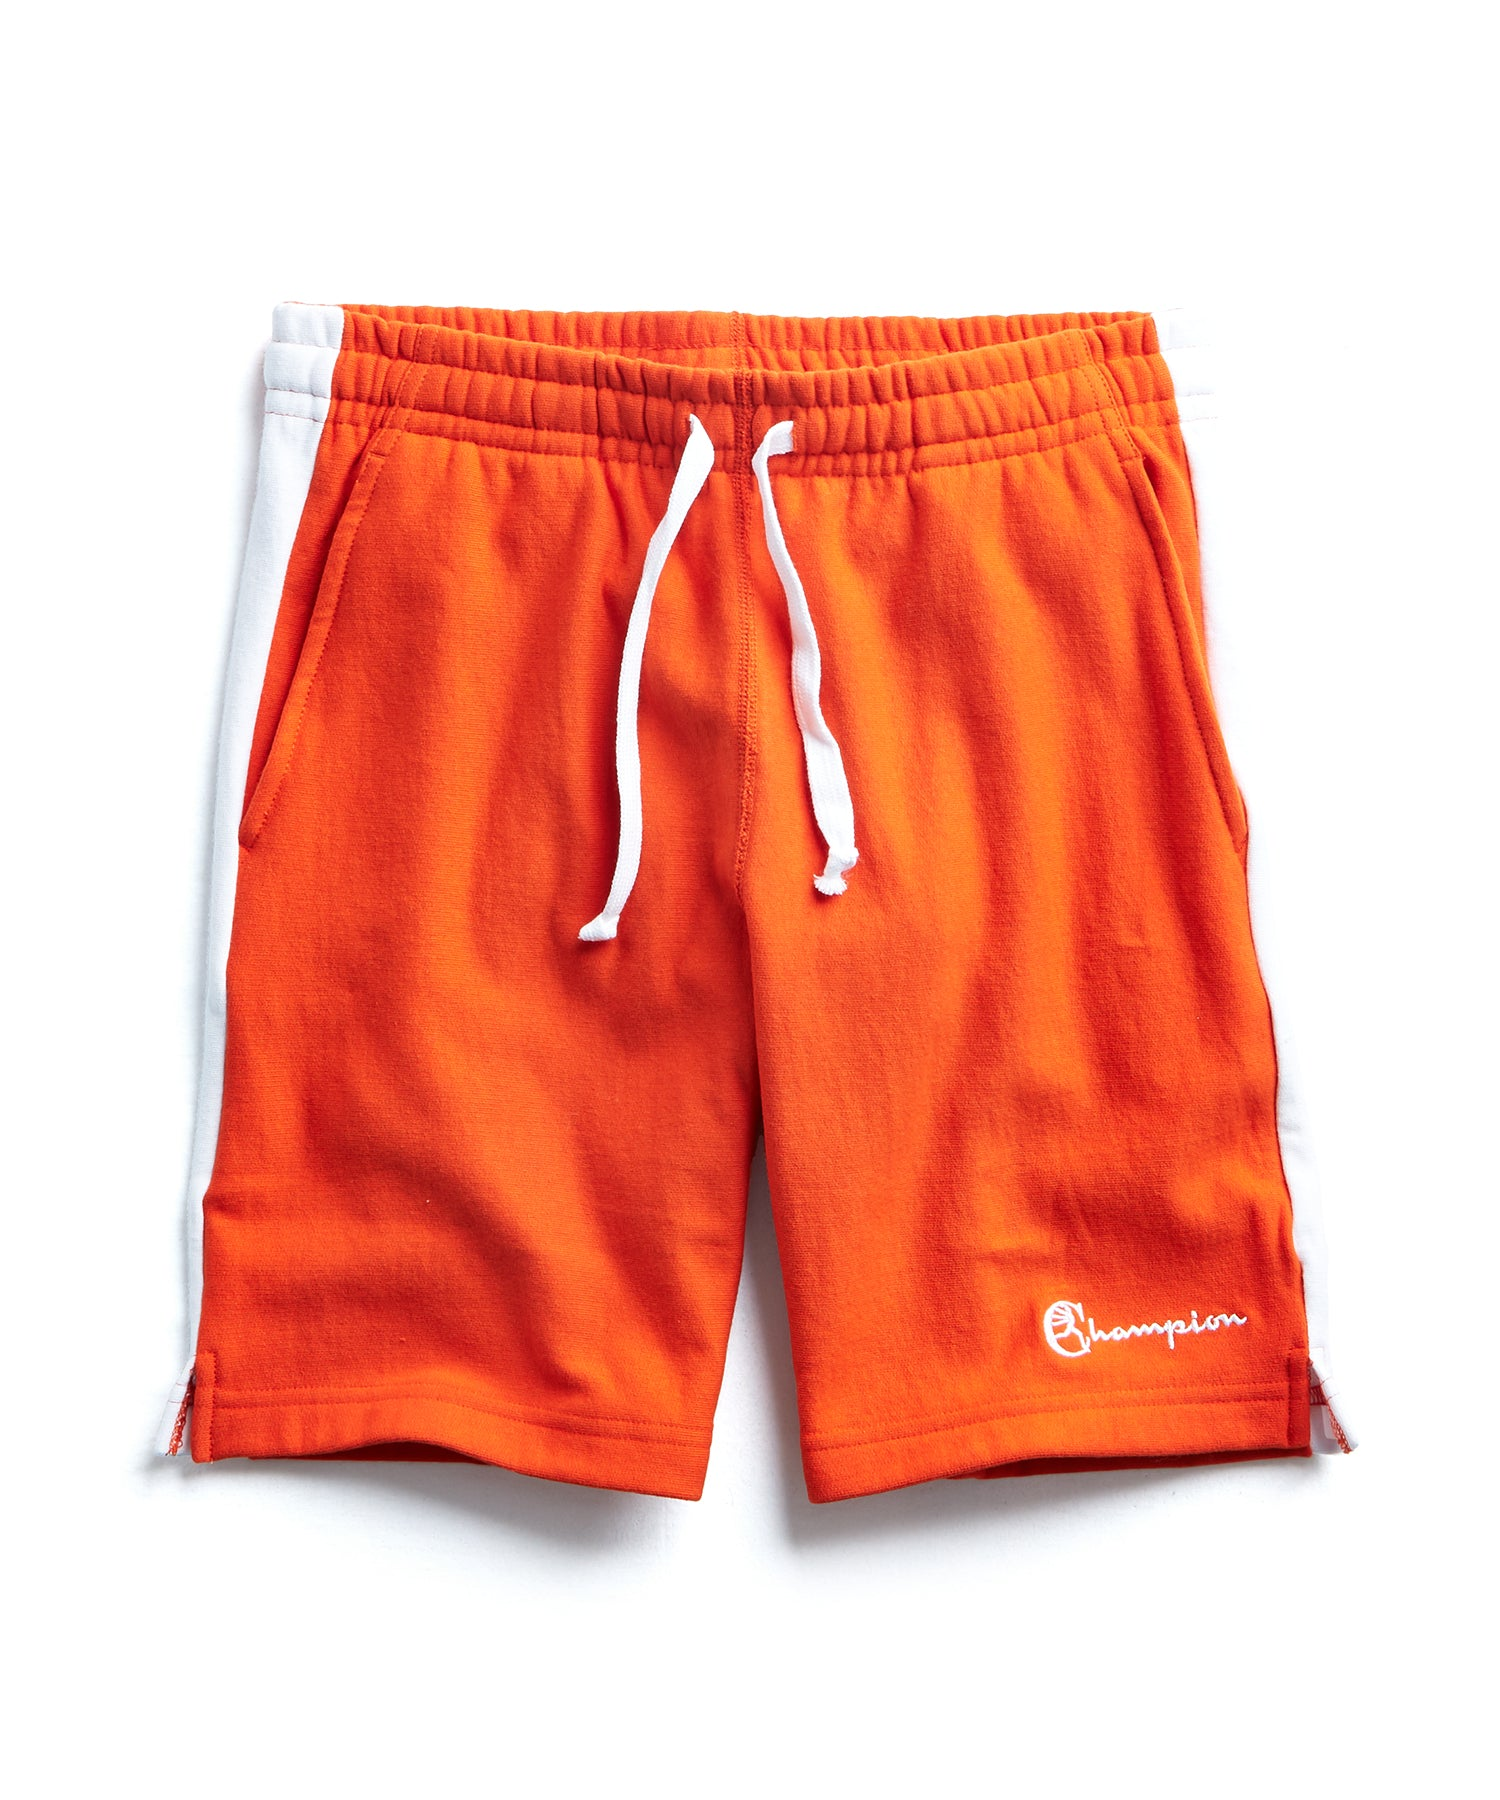 Warm Up Short With Side Panels in Sunset Orange